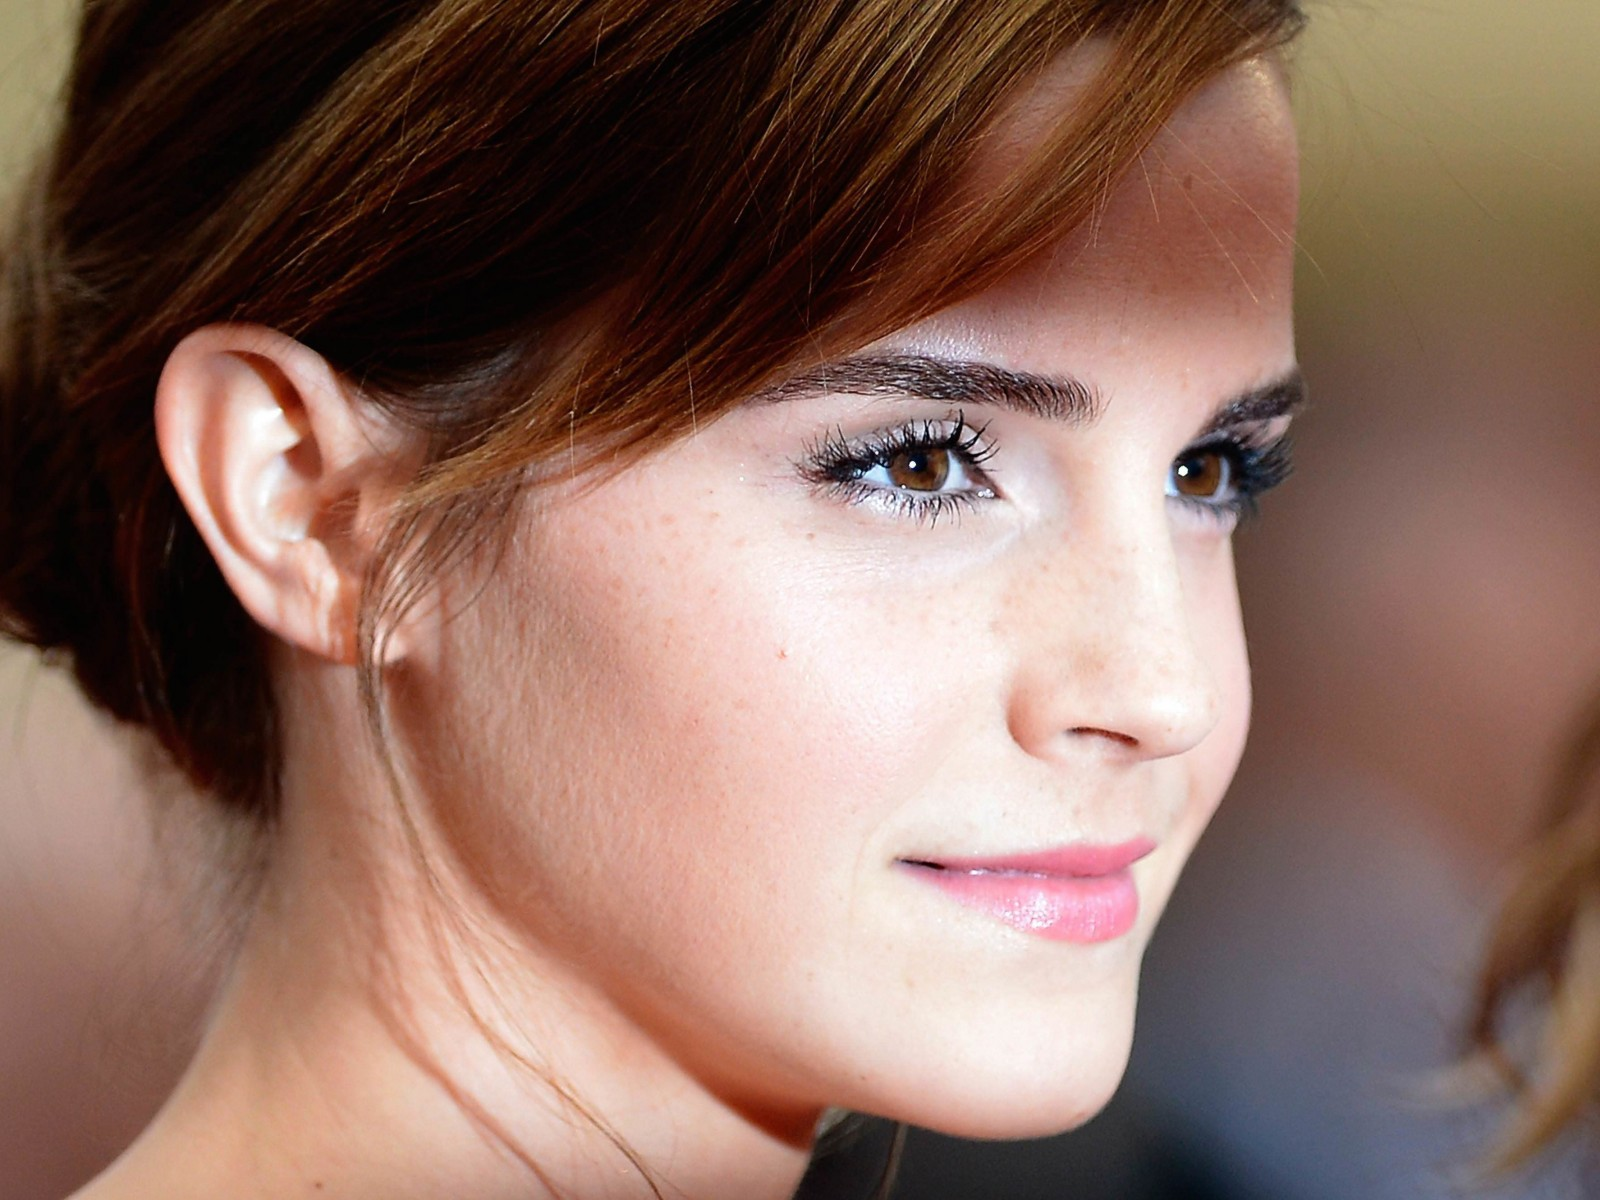 Emma Watson Wallpaper for Desktop 1600x1200